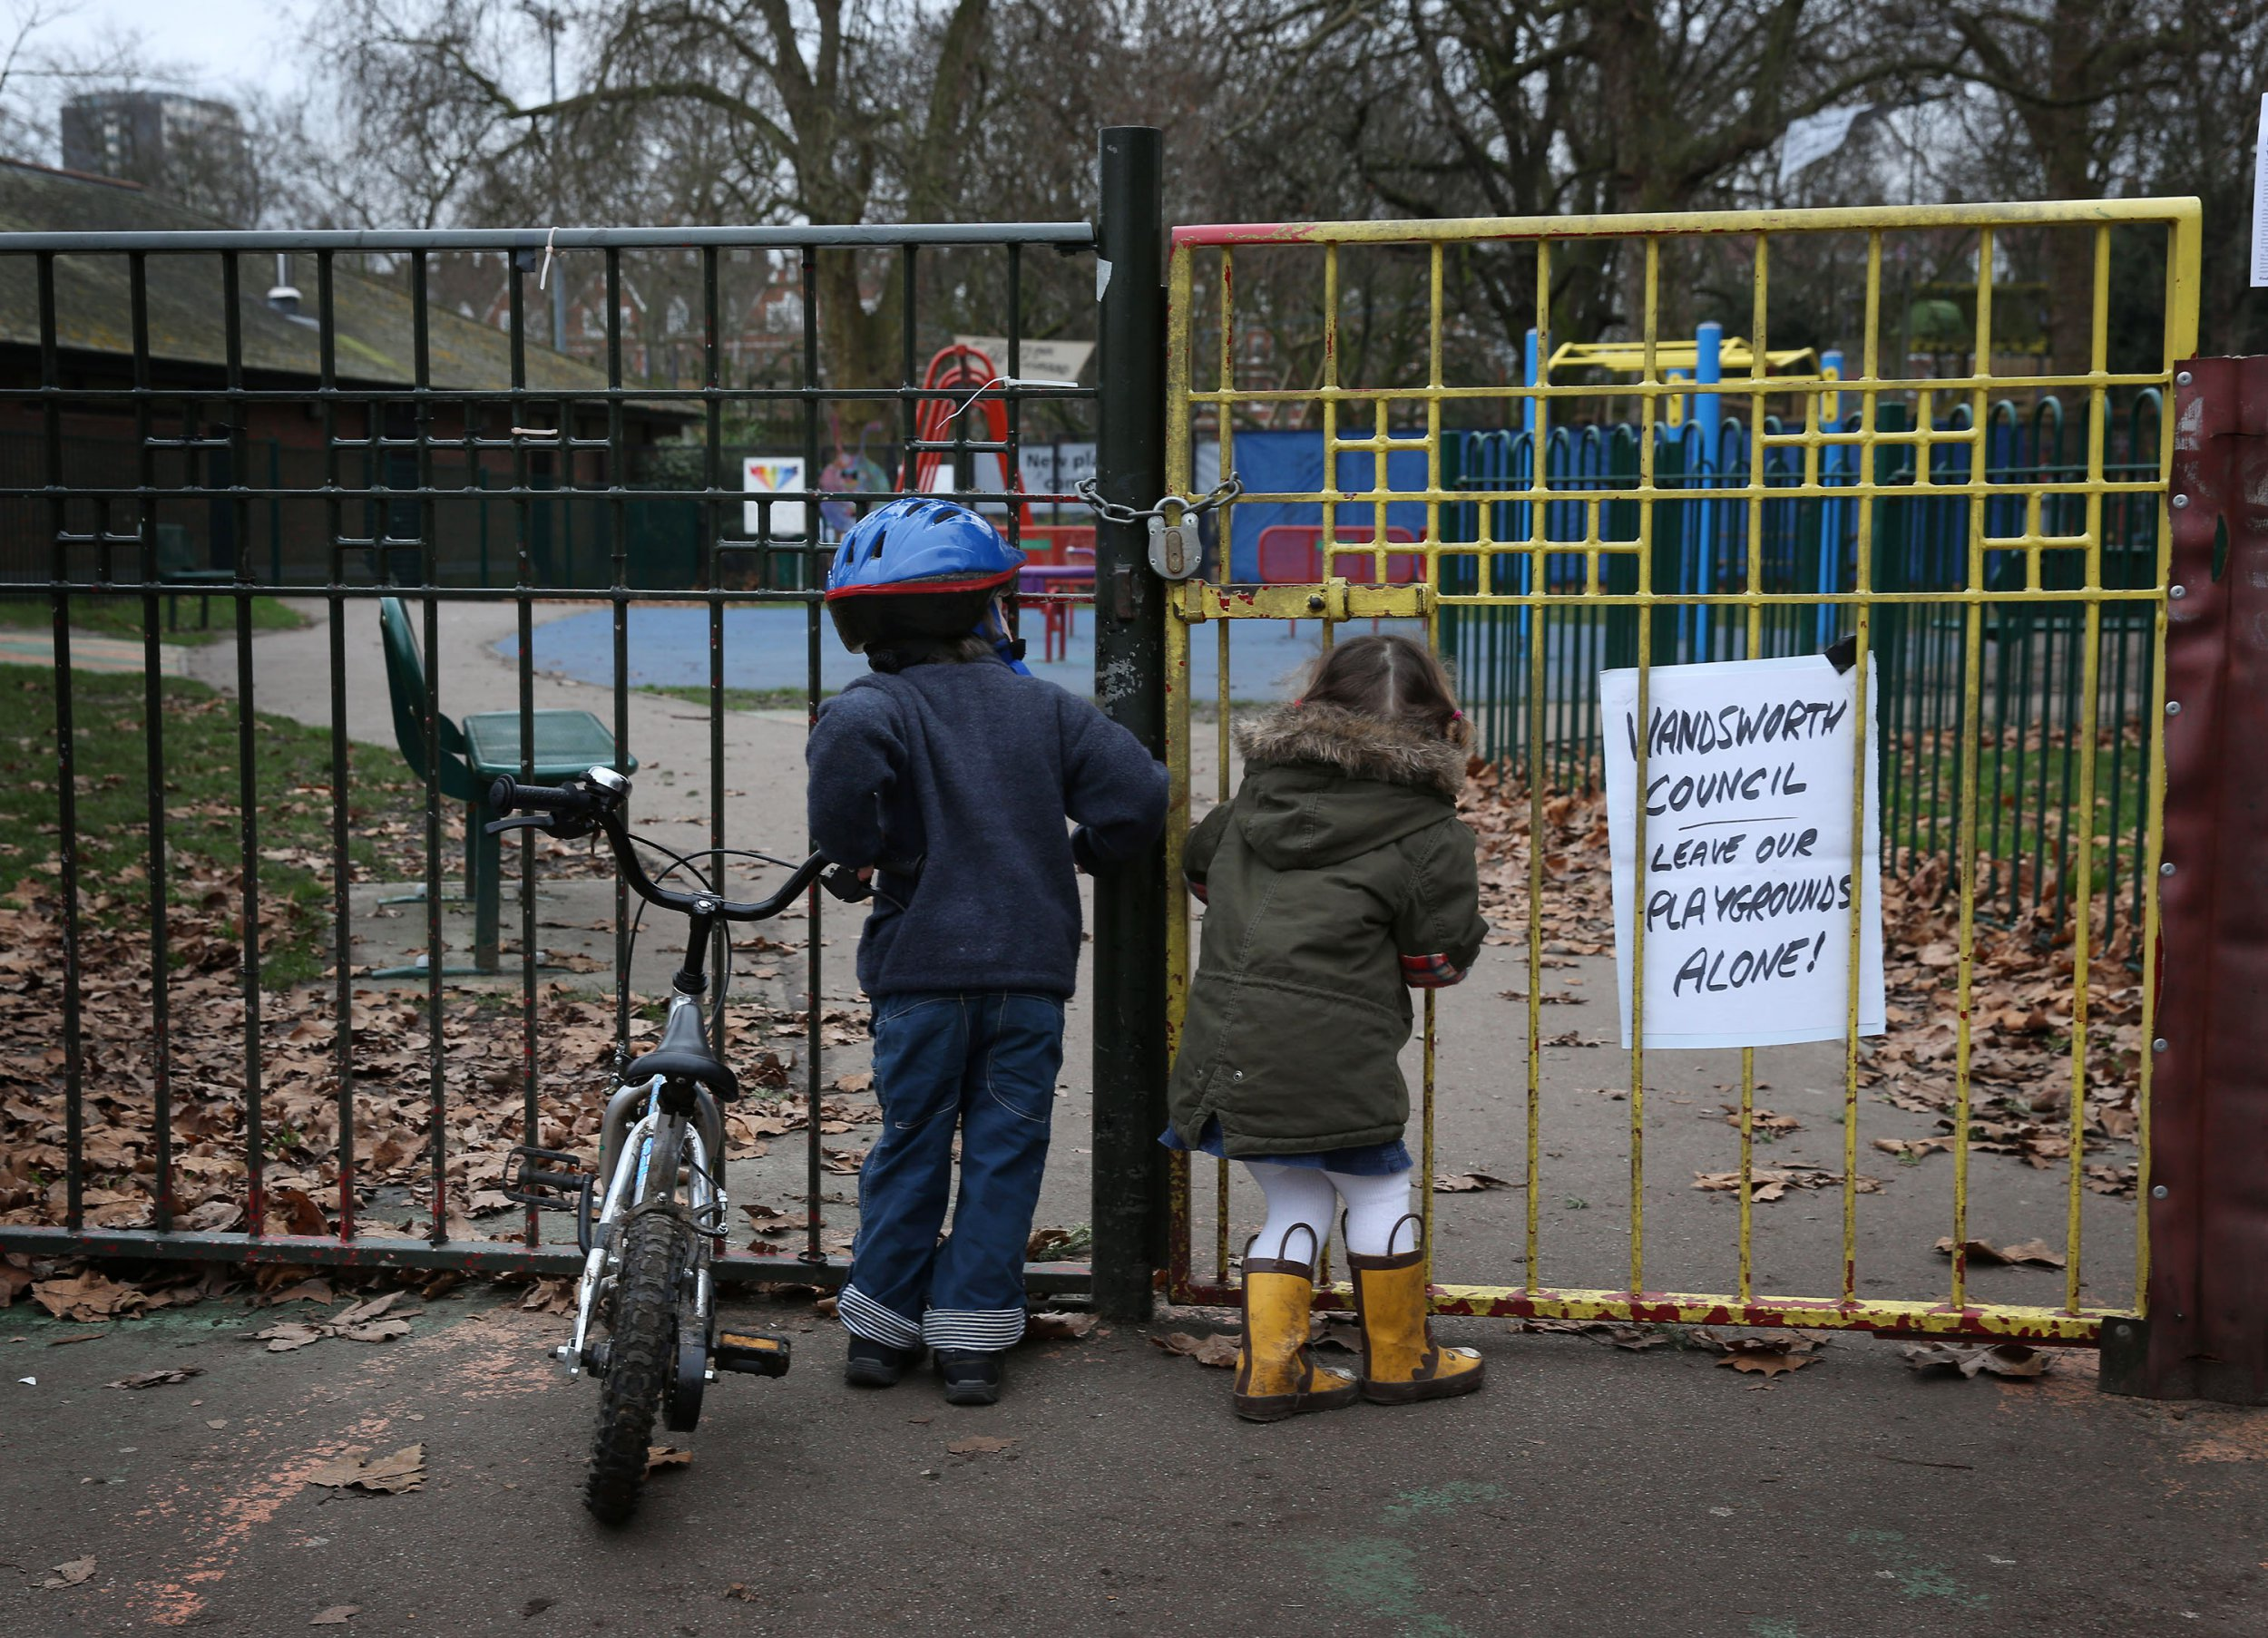 British children are more likely to be obese, in poverty and sick than those in other countries LONDON, ENGLAND - JANUARY 08: Children look into a closed playground next to Battersea Park adventure playground on January 8, 2013 in London, England. Activists and local residents oppose local authority plans to demolish the adventure playground, which has been mostly used by teenagers, and replace it with facilities for younger children who will need less supervision. (Photo by Peter Macdiarmid/Getty Images)